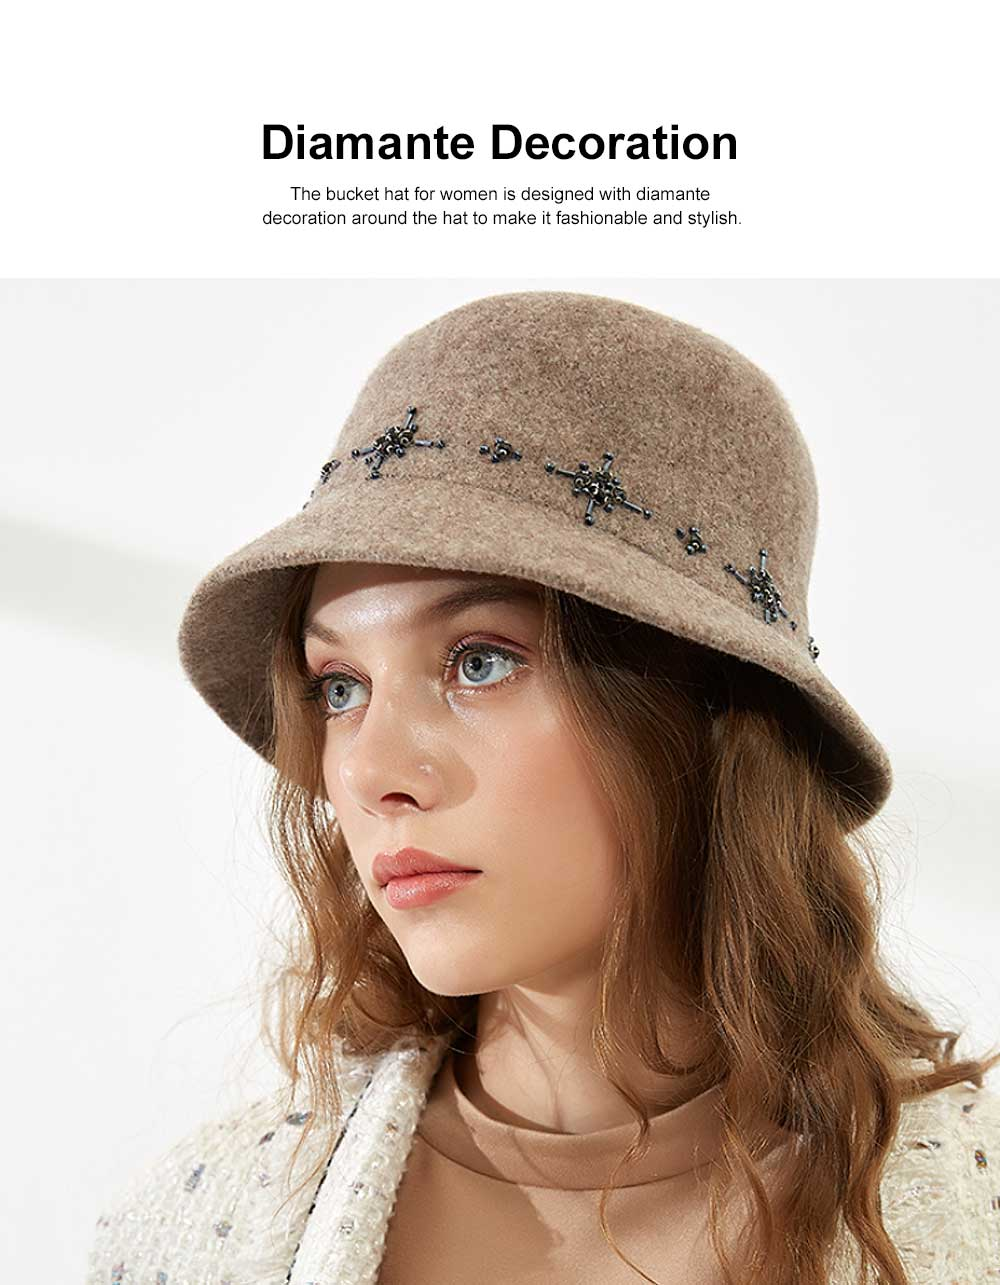 British Style Thermal Bucket Hat for Women Autumn Winter Wool-made Vintage Top Hat Round Top Revers Bowler Hat 2